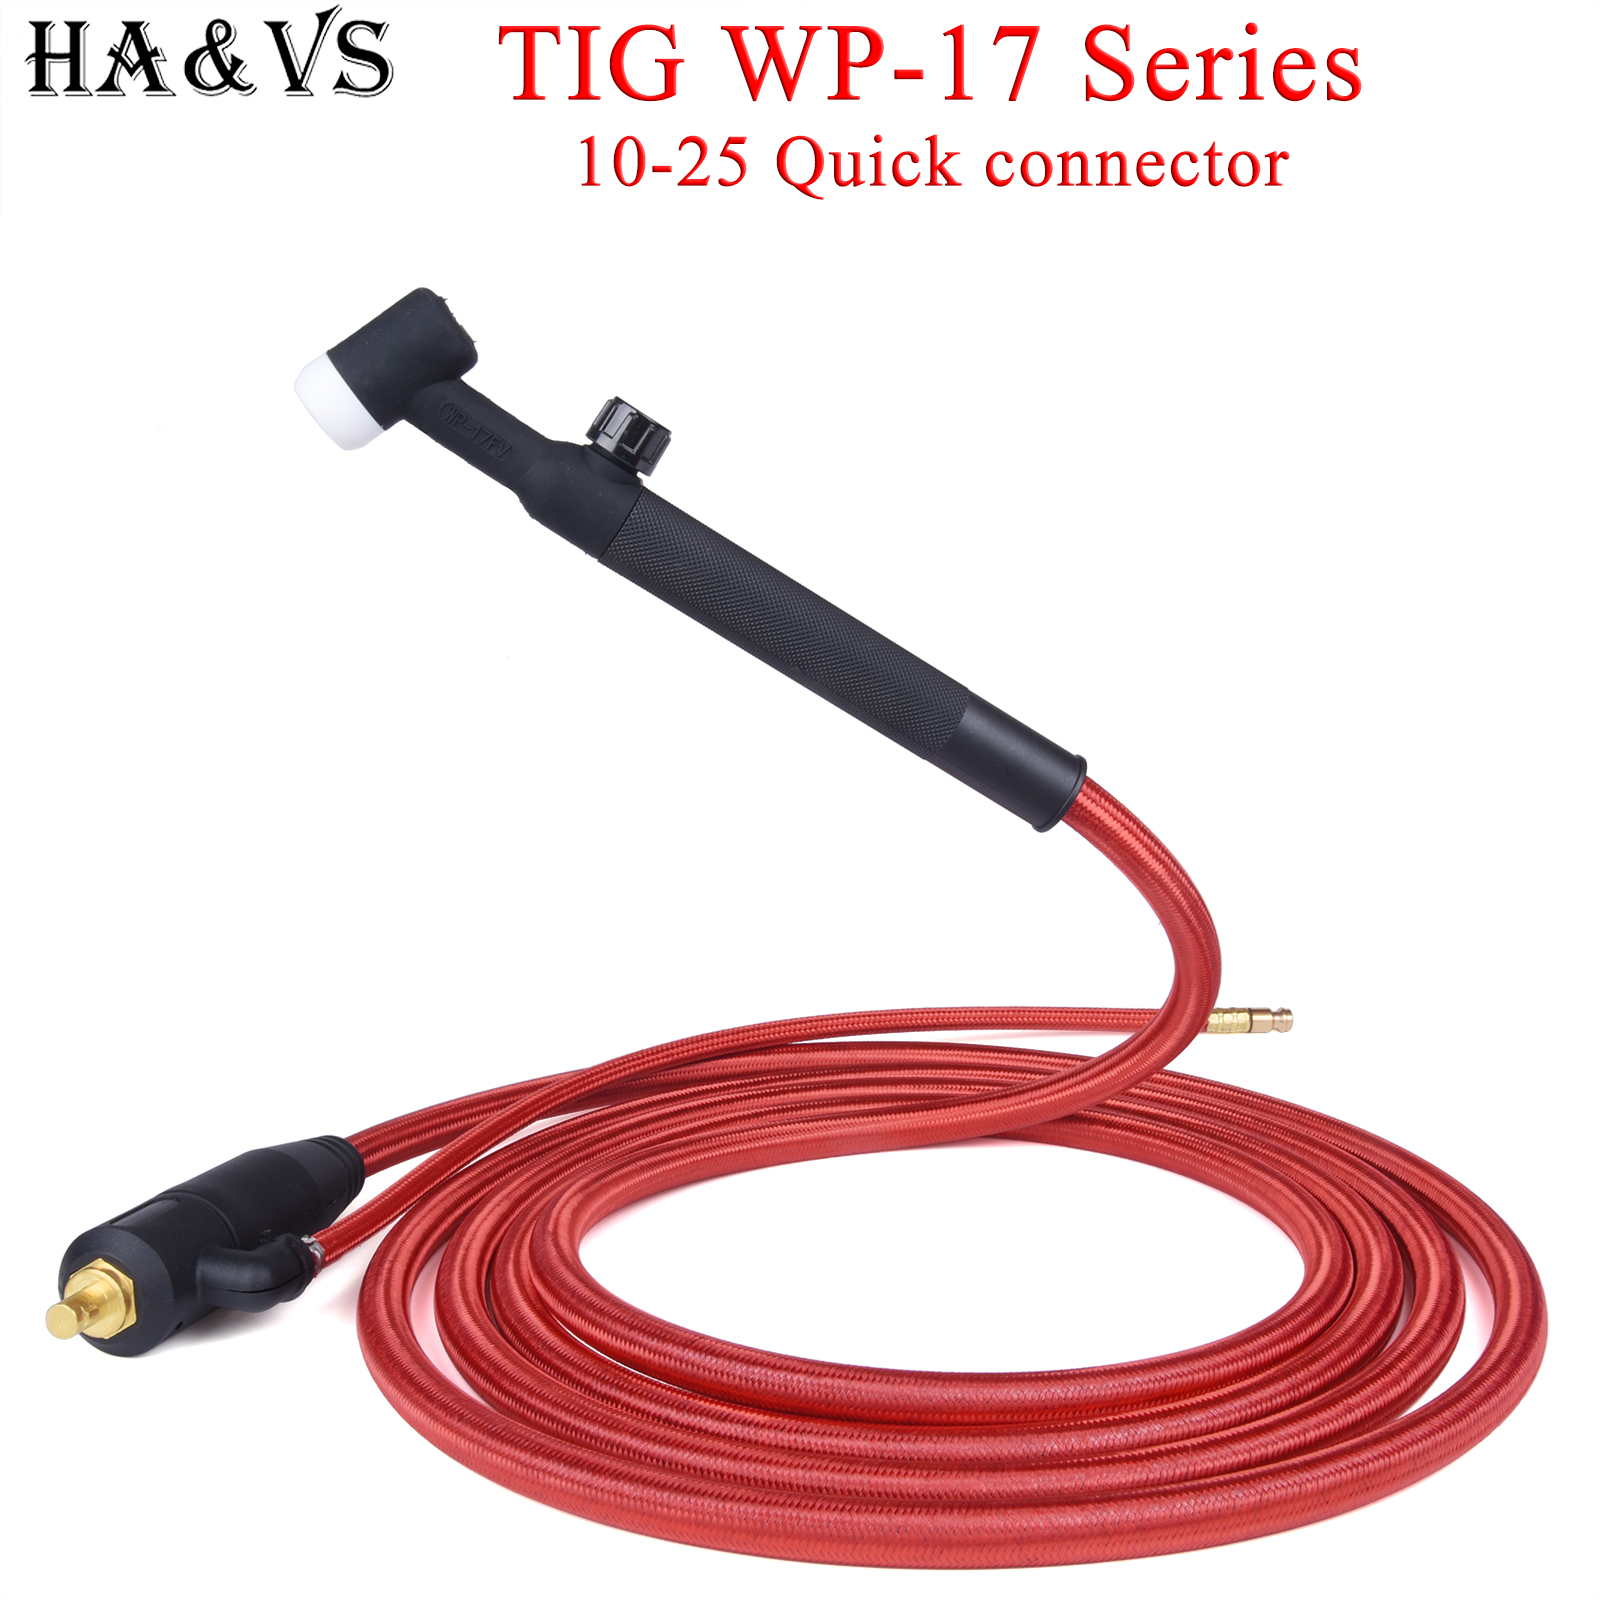 WP17 WP 17F 17FV TIG Welding Torch Quick Connector Gas-Electric Integrated Rubber Hose Cable Wires 4M 10-25 Euro Connector 13Ft